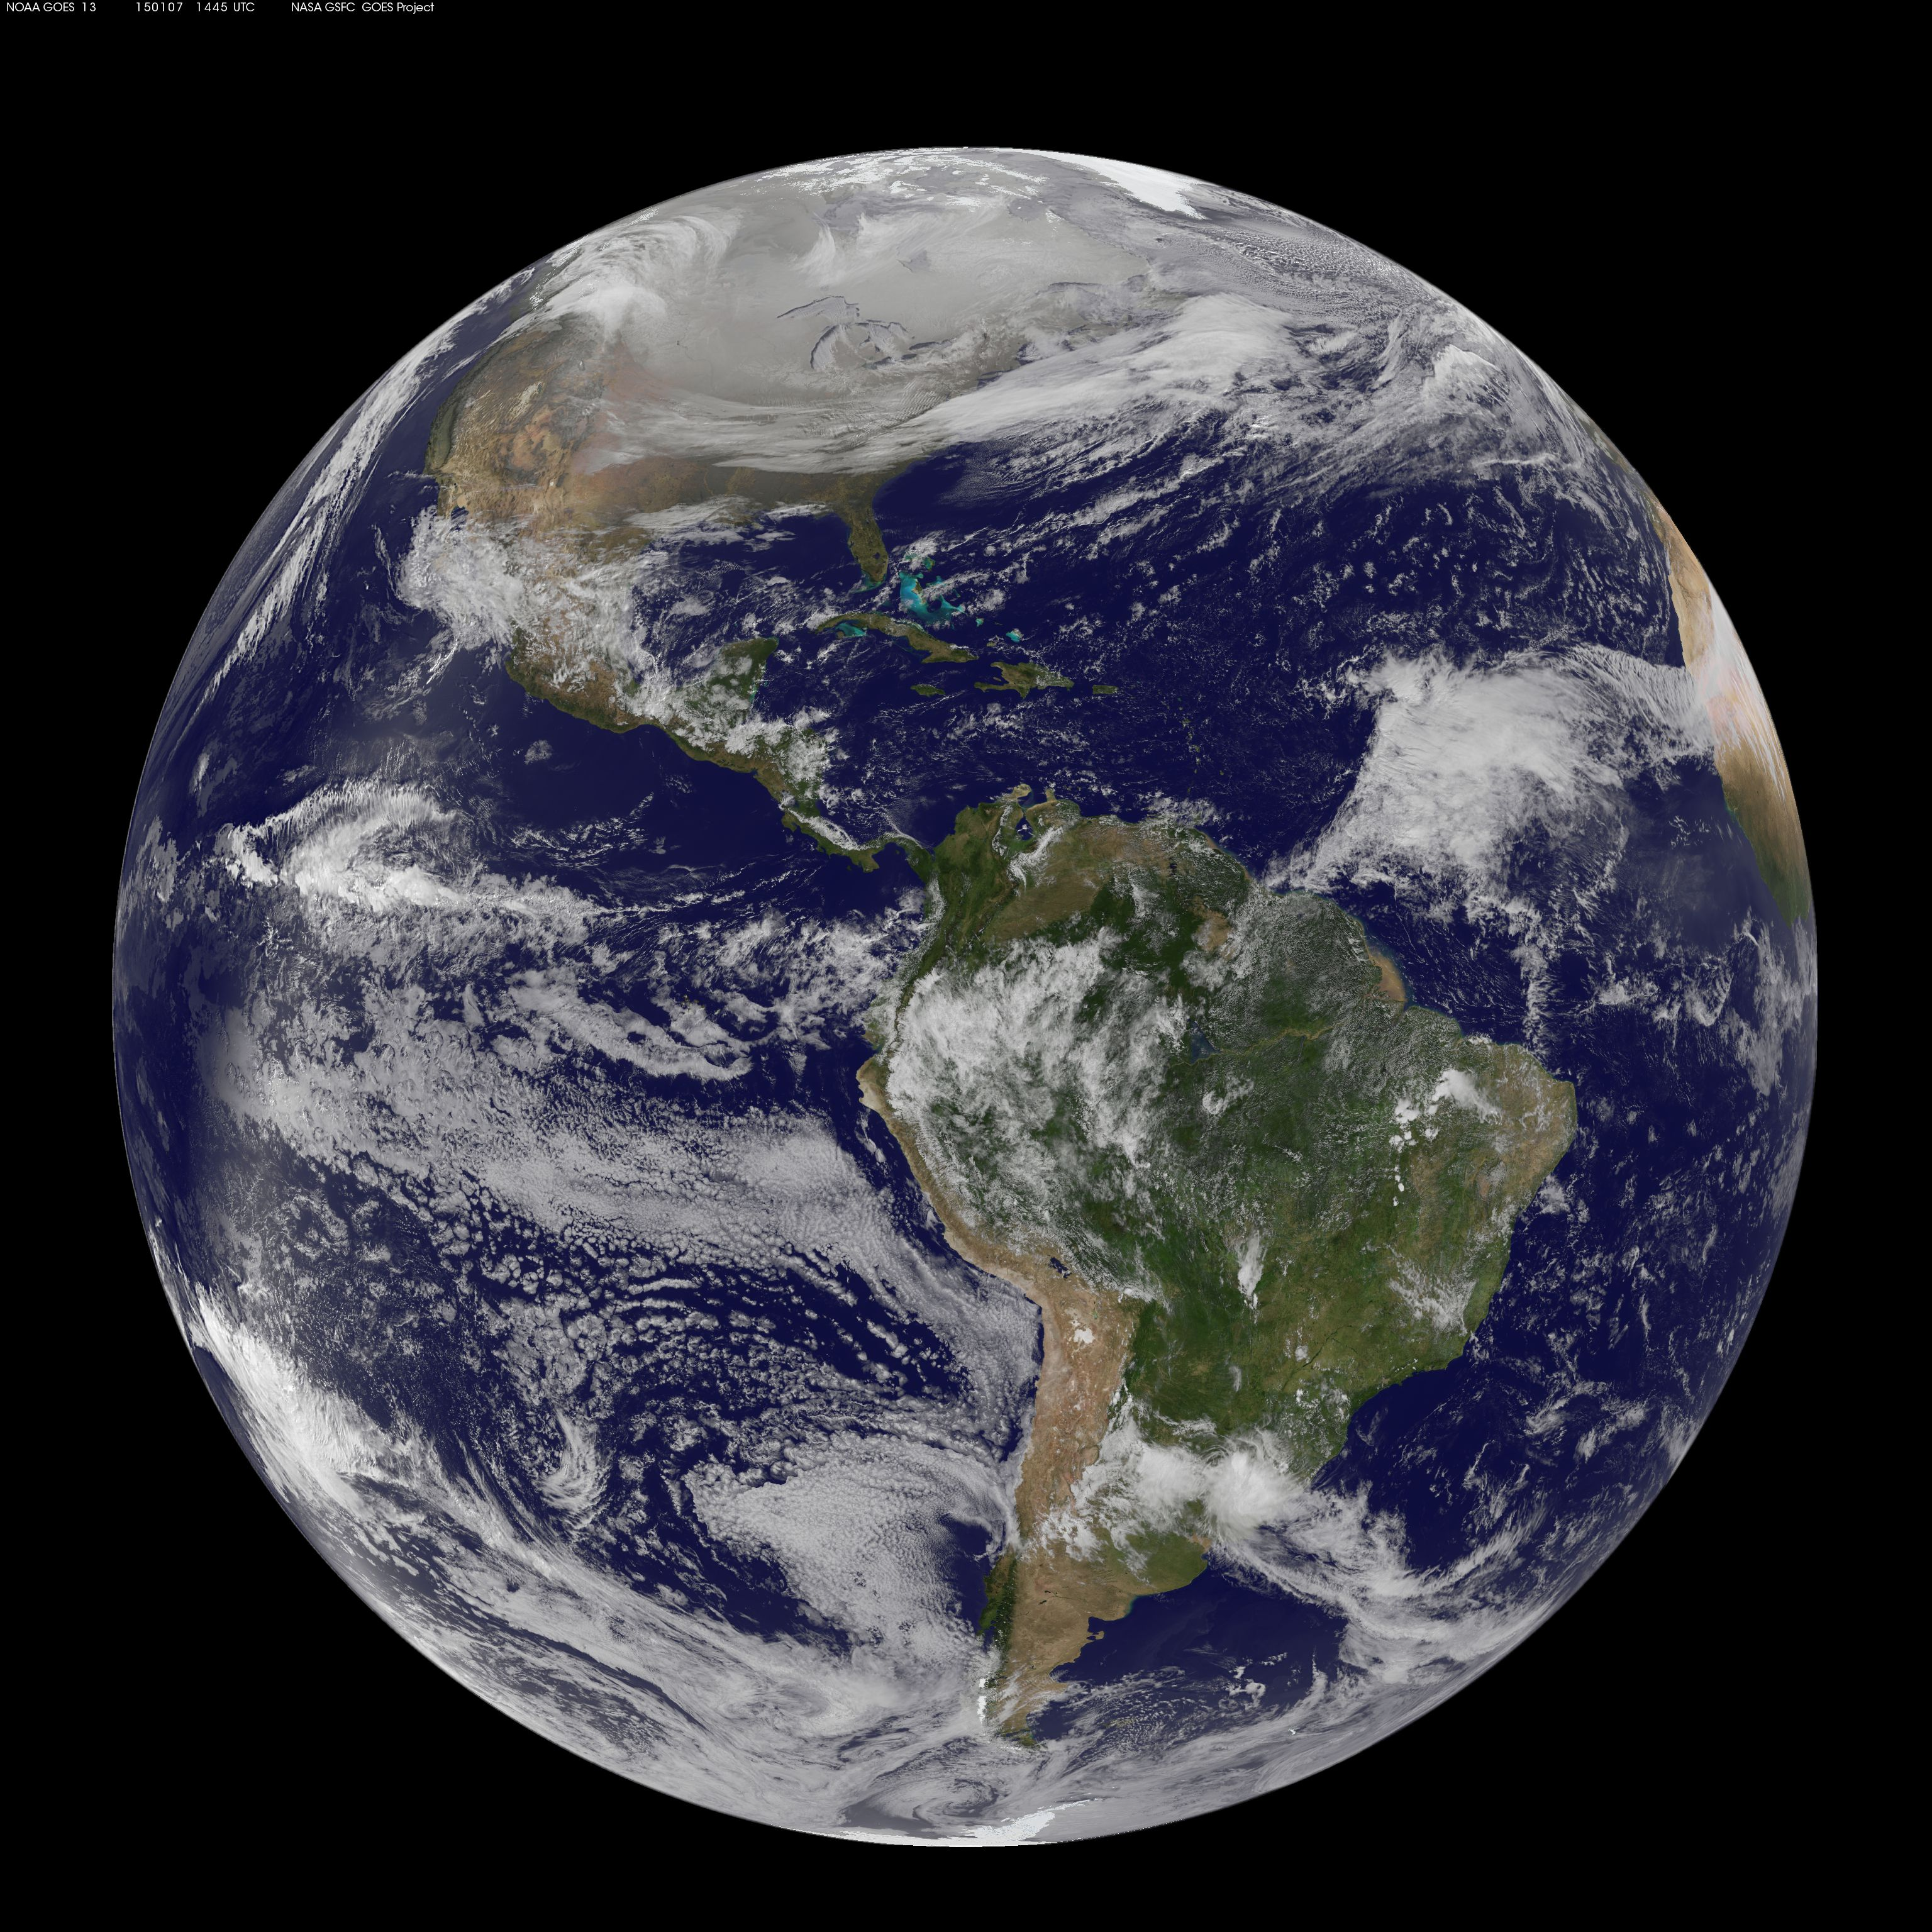 DSCOVR's EPIC Vision of Earth | Deep Space Climate Observatory